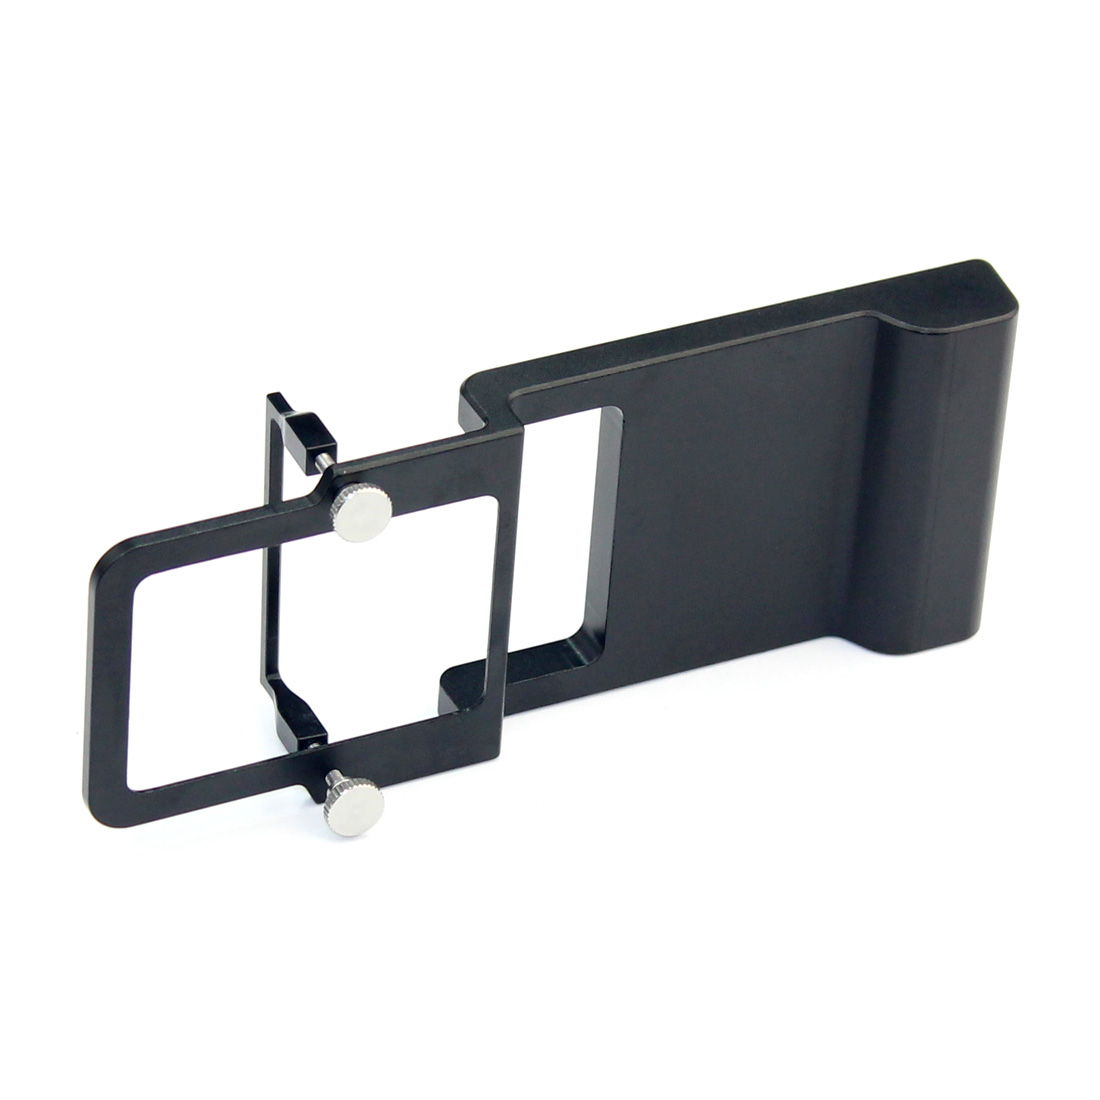 JMT Metal Switch Mount Plate Adapter for Gopro 5 4 3 3+ Xiaoyi for DJI Osmo Mobile Zhiyun Smooth Q 3 Camera Stabilizer Parts